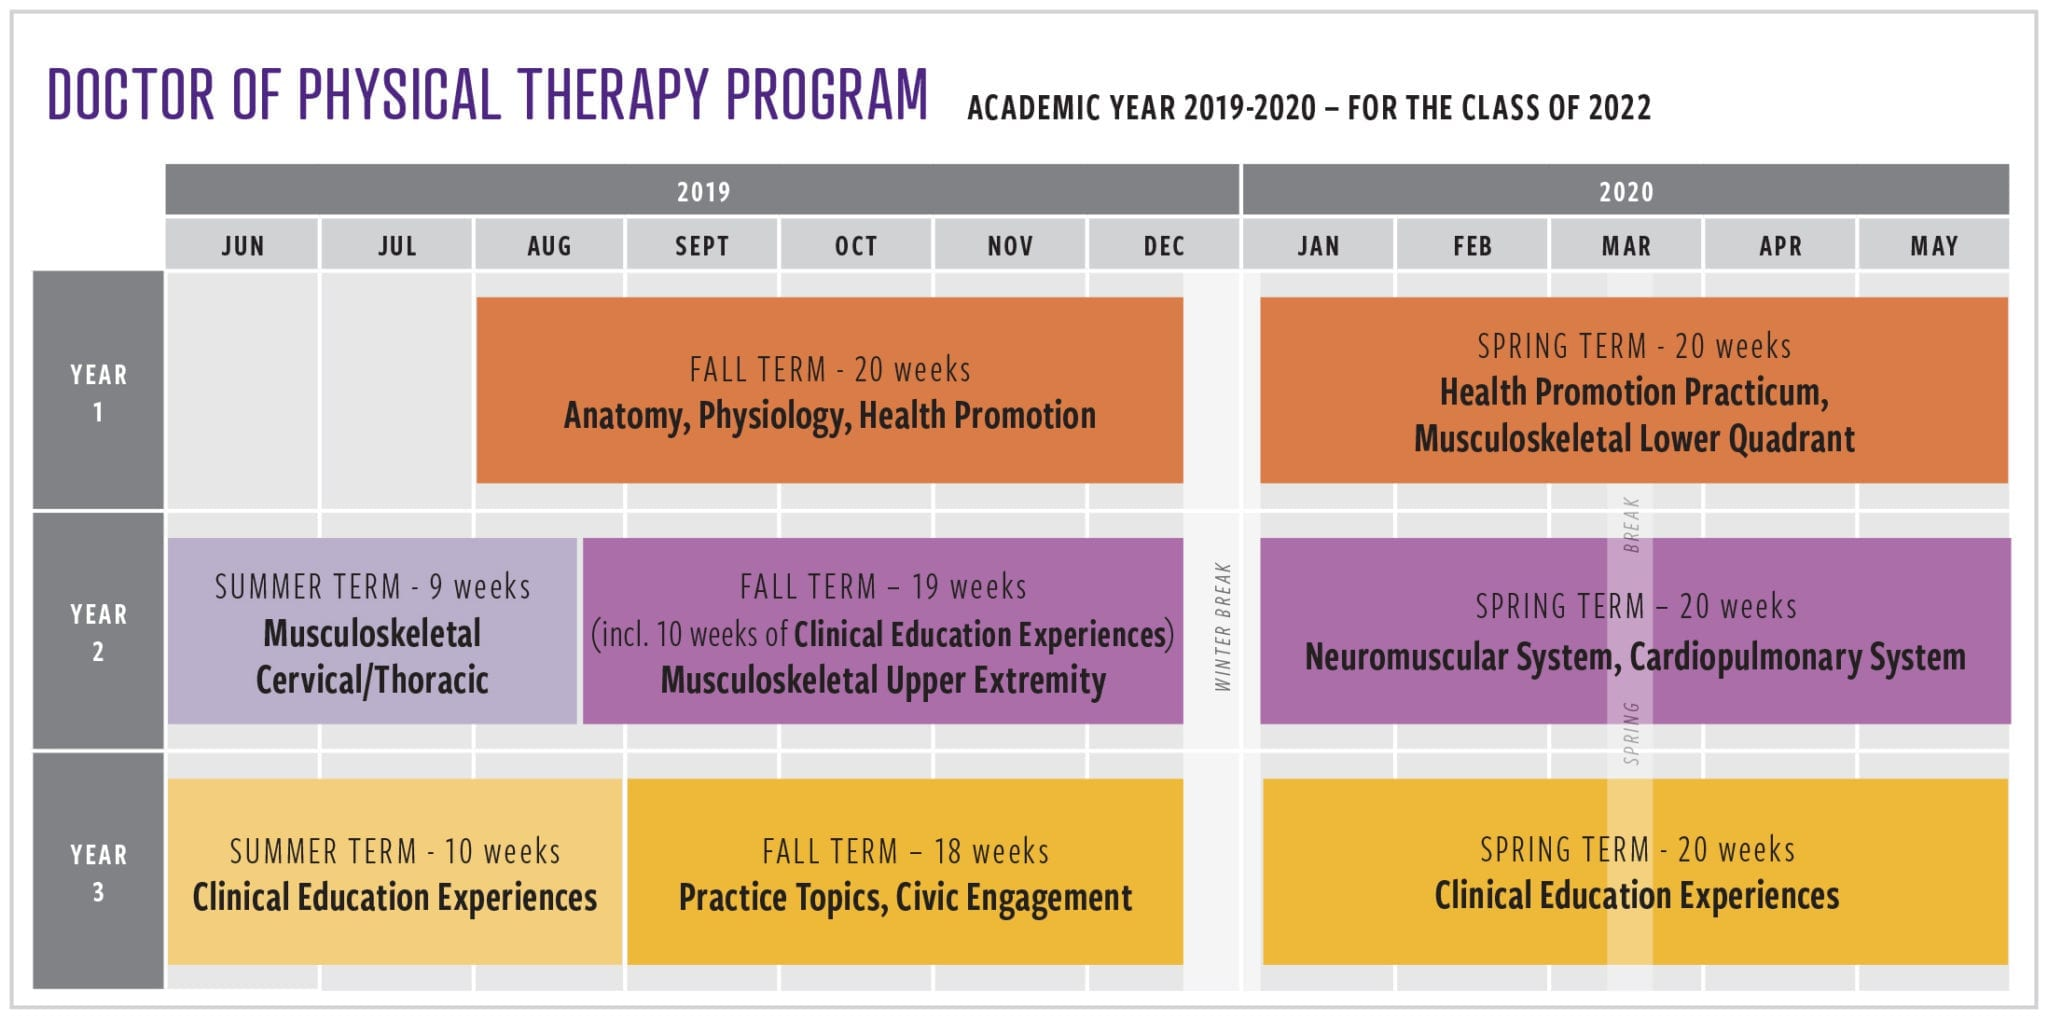 Des Moines University Doctor of Physical Therapy Program 2019-20 Curriculum